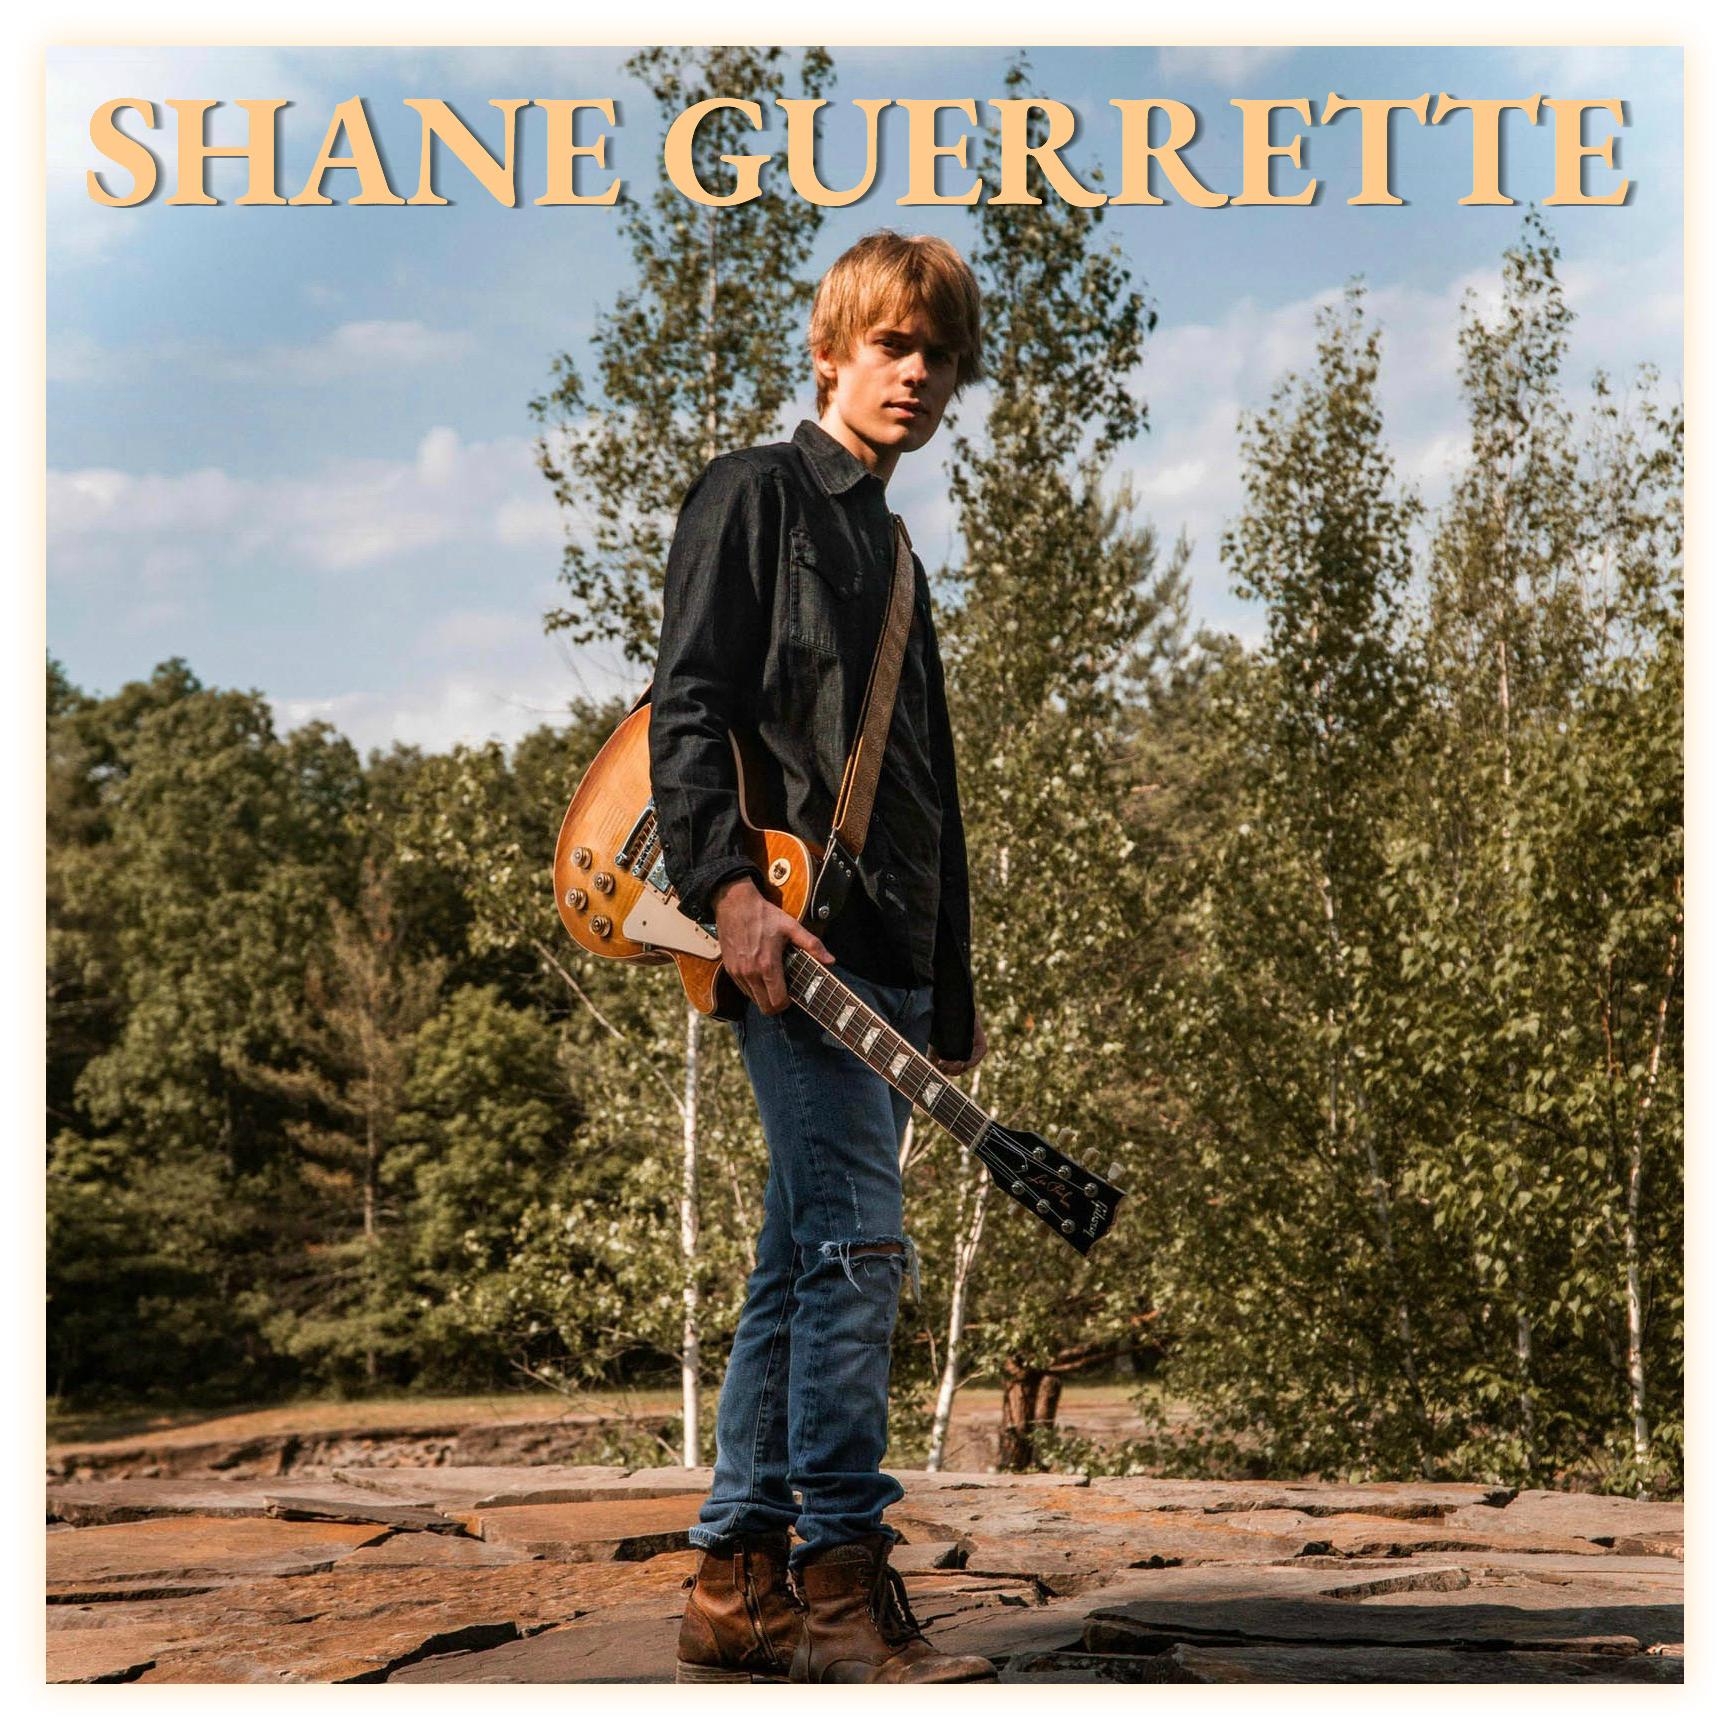 SHANE GUERRETTE THE EP - OUT NOW